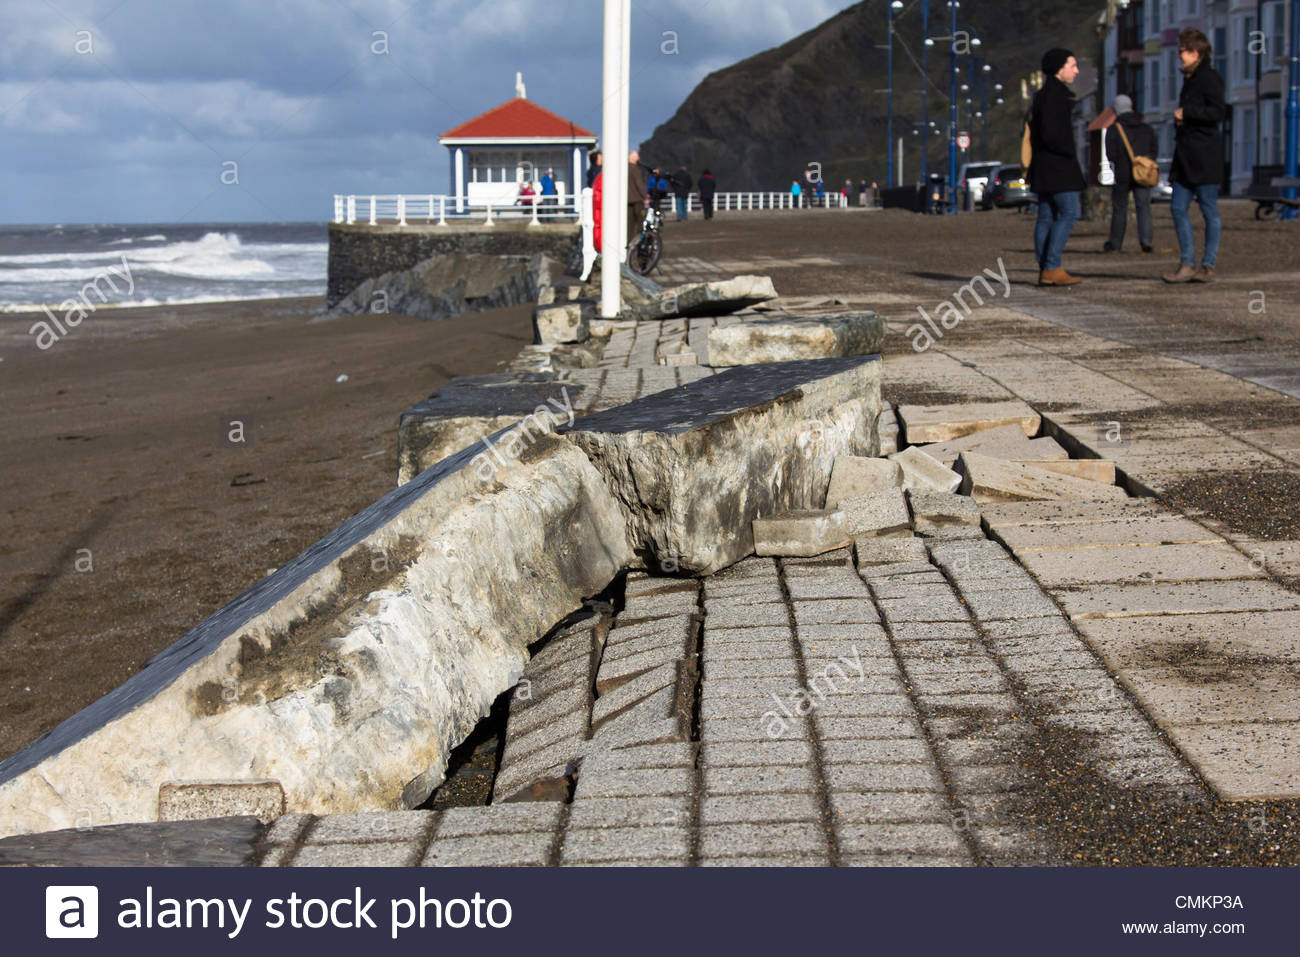 Aberystwyth, mid Wales, UK. 3rd Nov, 2013. Strollers visit the promenade at Aberystwyth to see the aftermath of - Stock Image